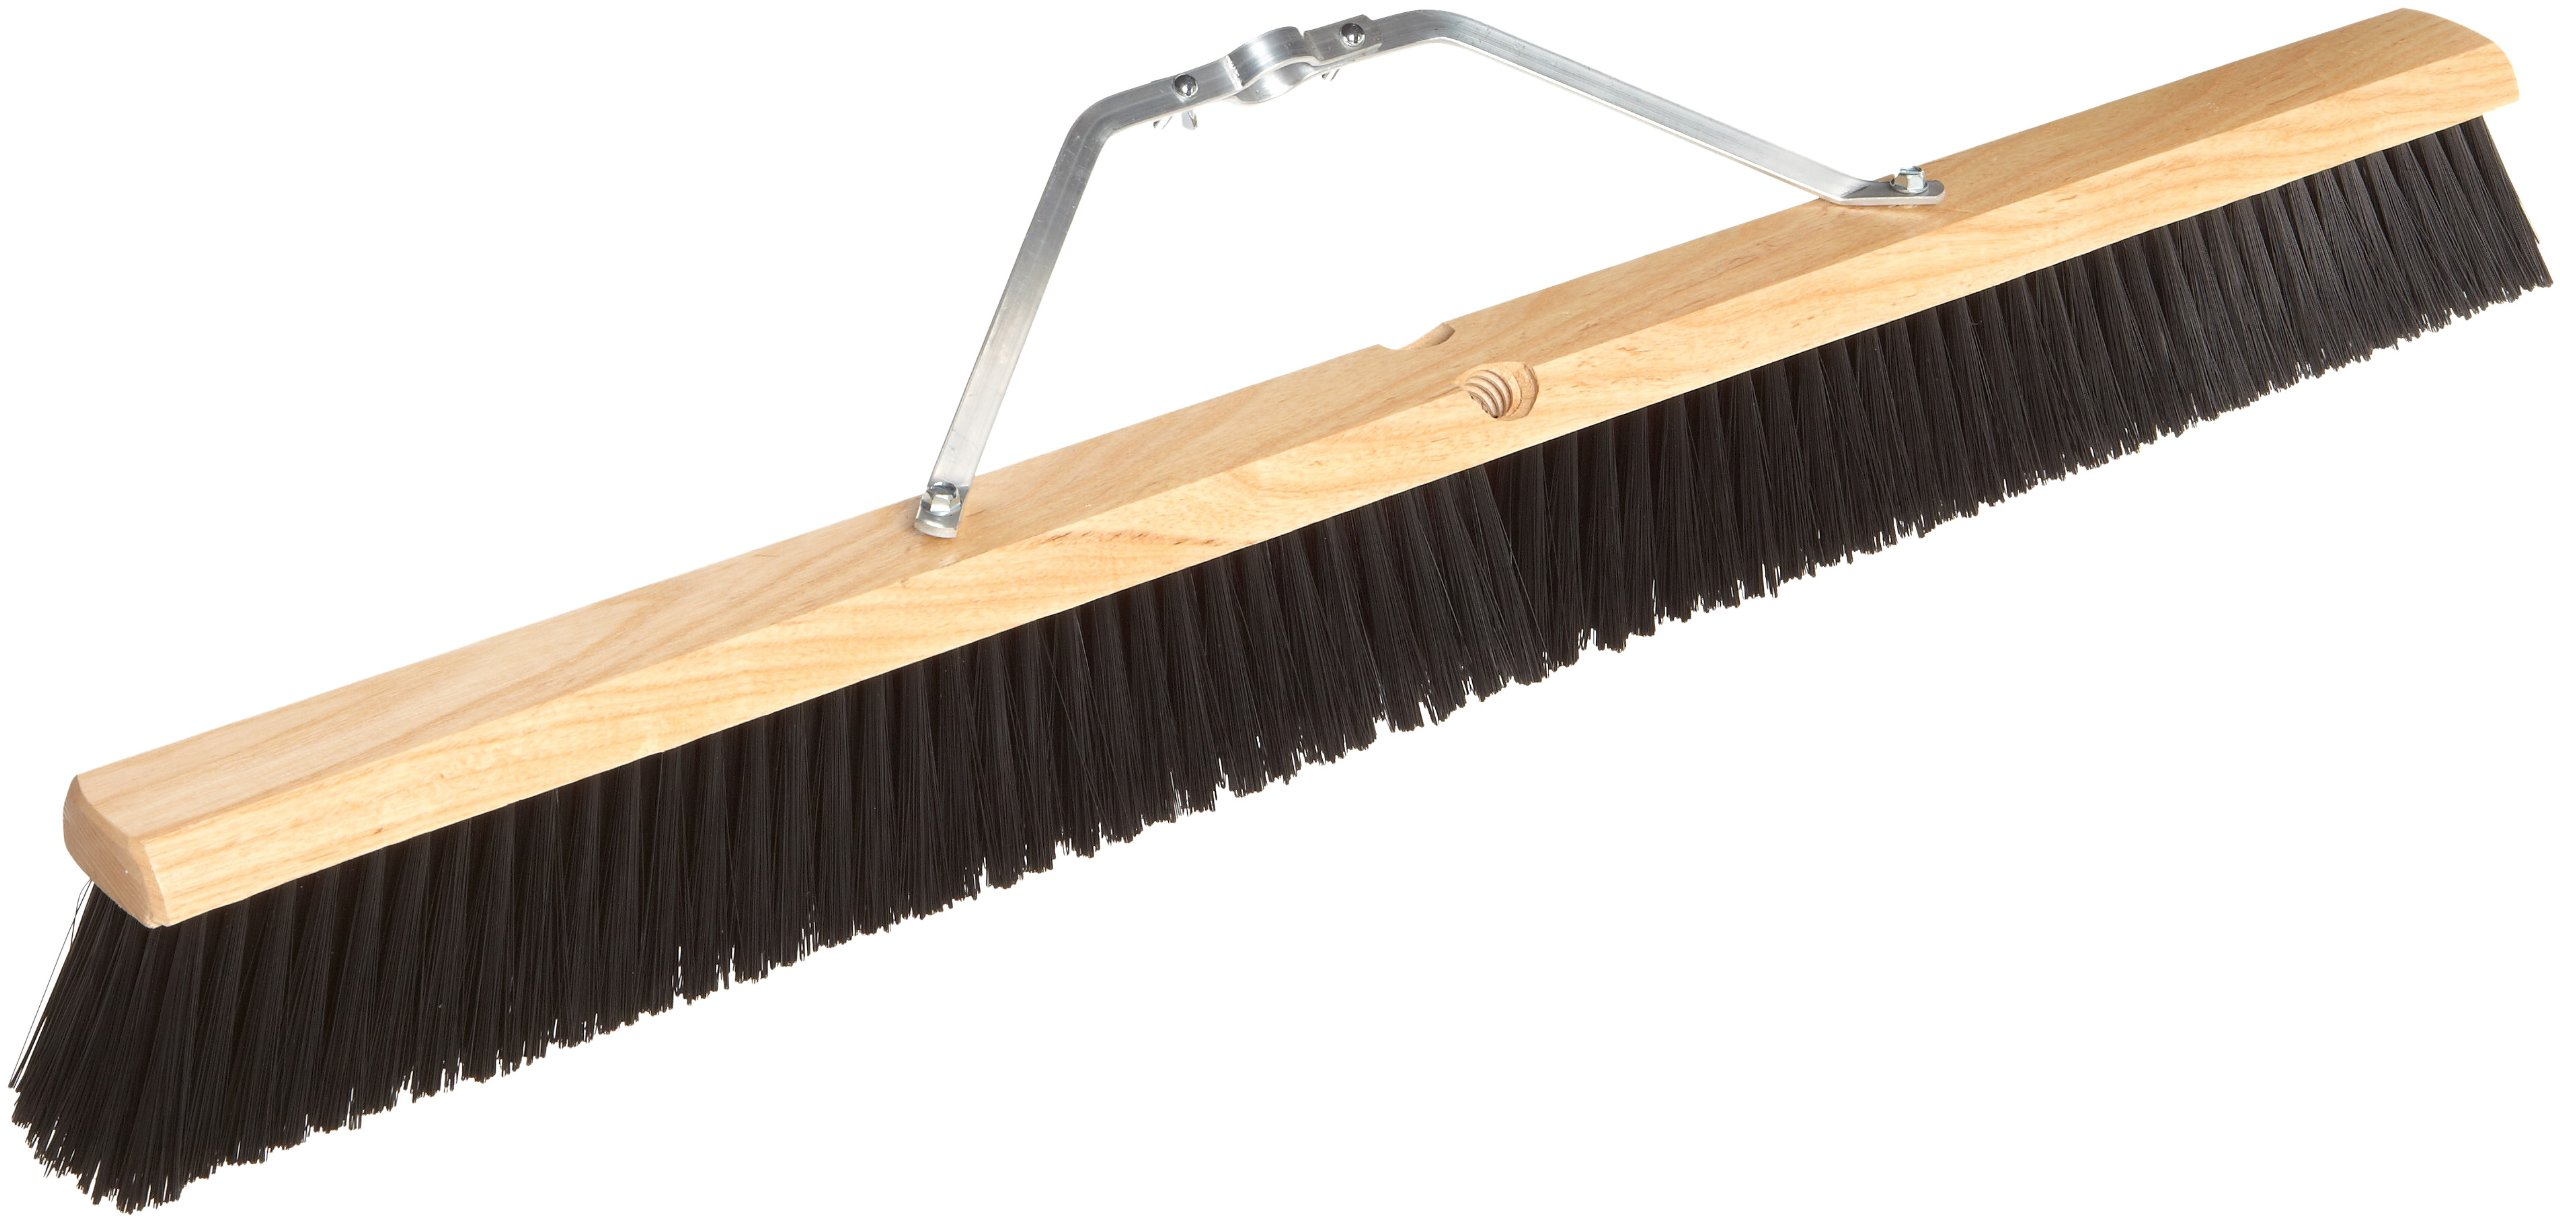 Magnolia Brush 1136 LH Line Floor Brush, Plastic Bristles, 3'' Trim, 36'' Length, Dark Red/Black (Case of 6) by Magnolia Brush